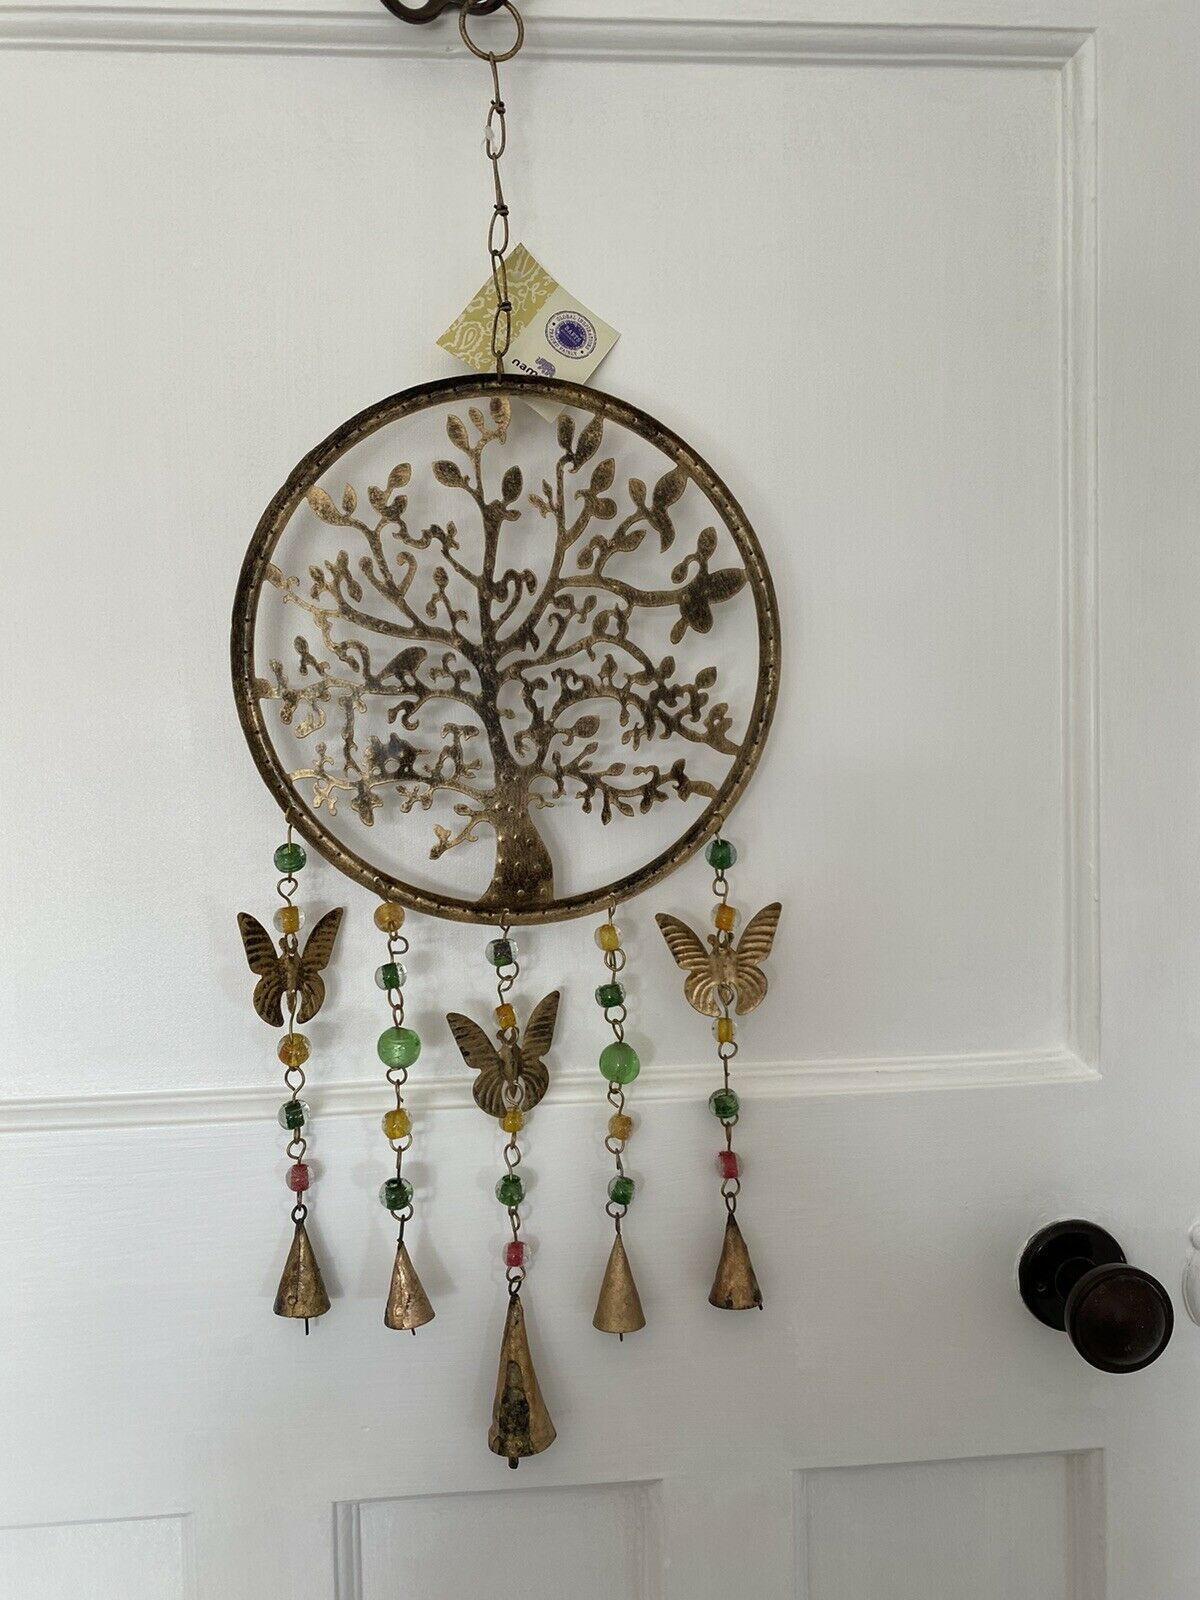 Namaste Tree Of Life Hanging Windchime/Mobile with bells, beads and butterflies